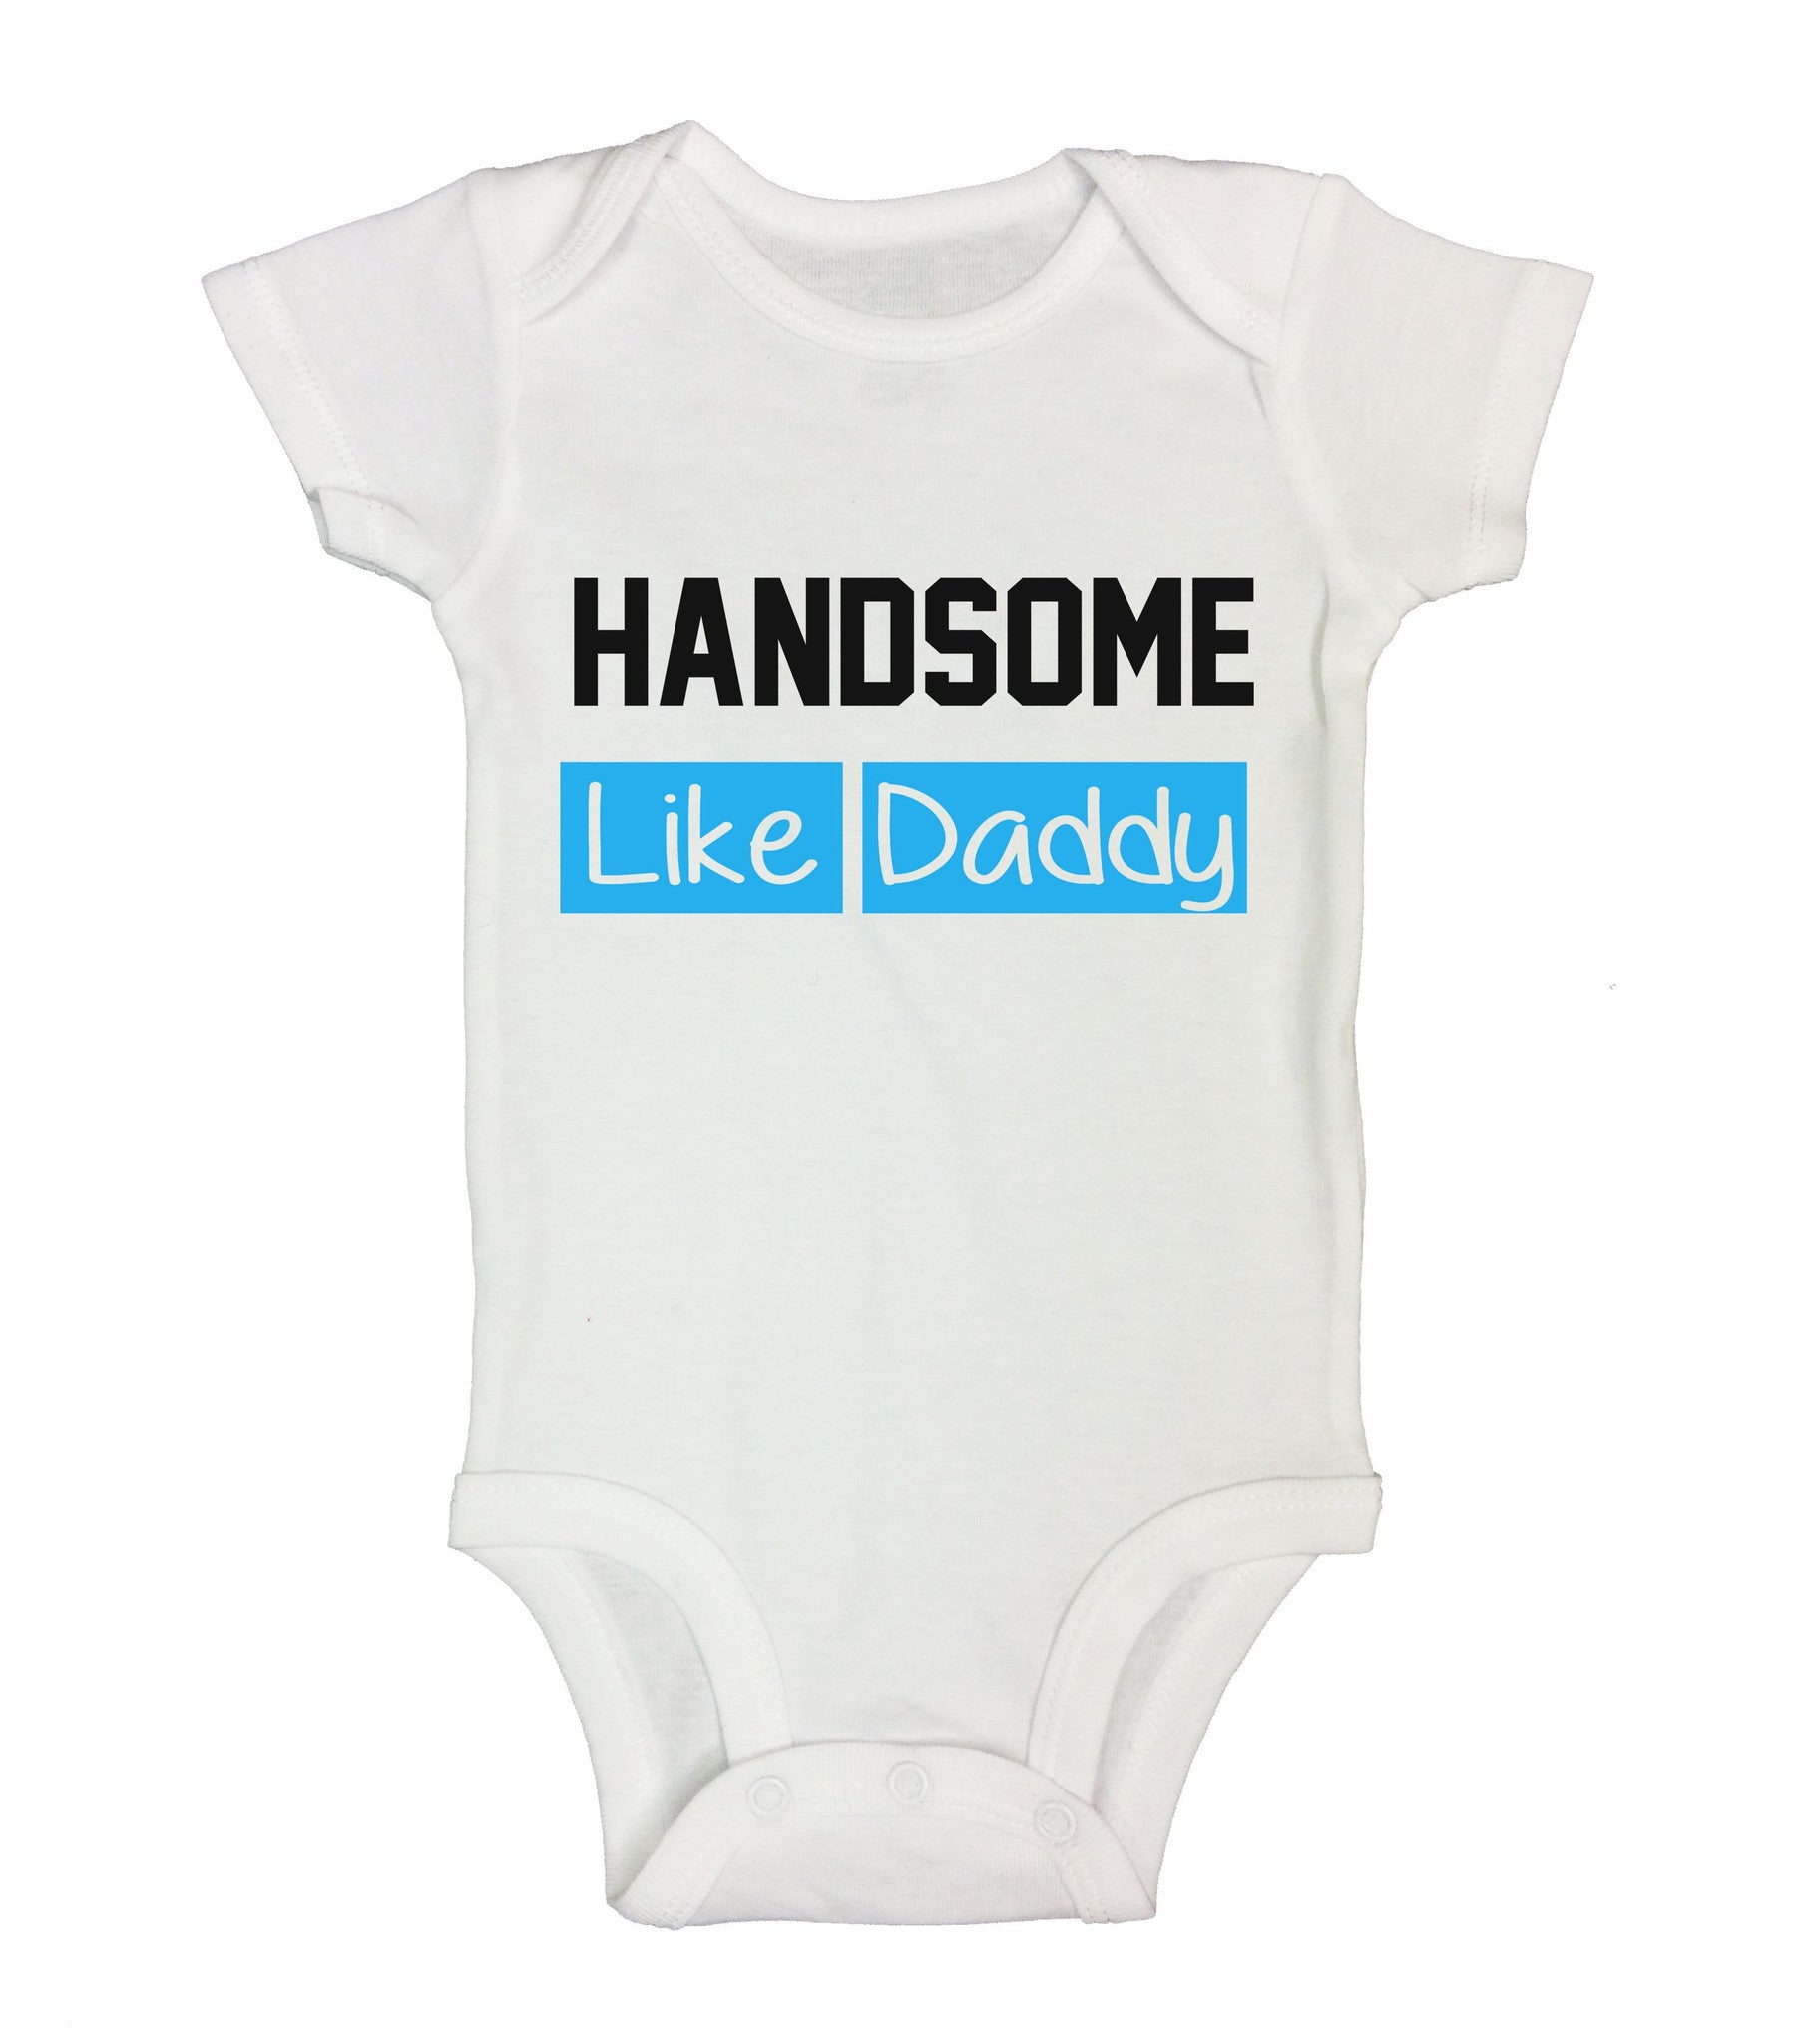 Handsome Like Daddy Funny Kids Onesie - B197 - Funny Shirts Tank Tops Burnouts and Triblends  - 2